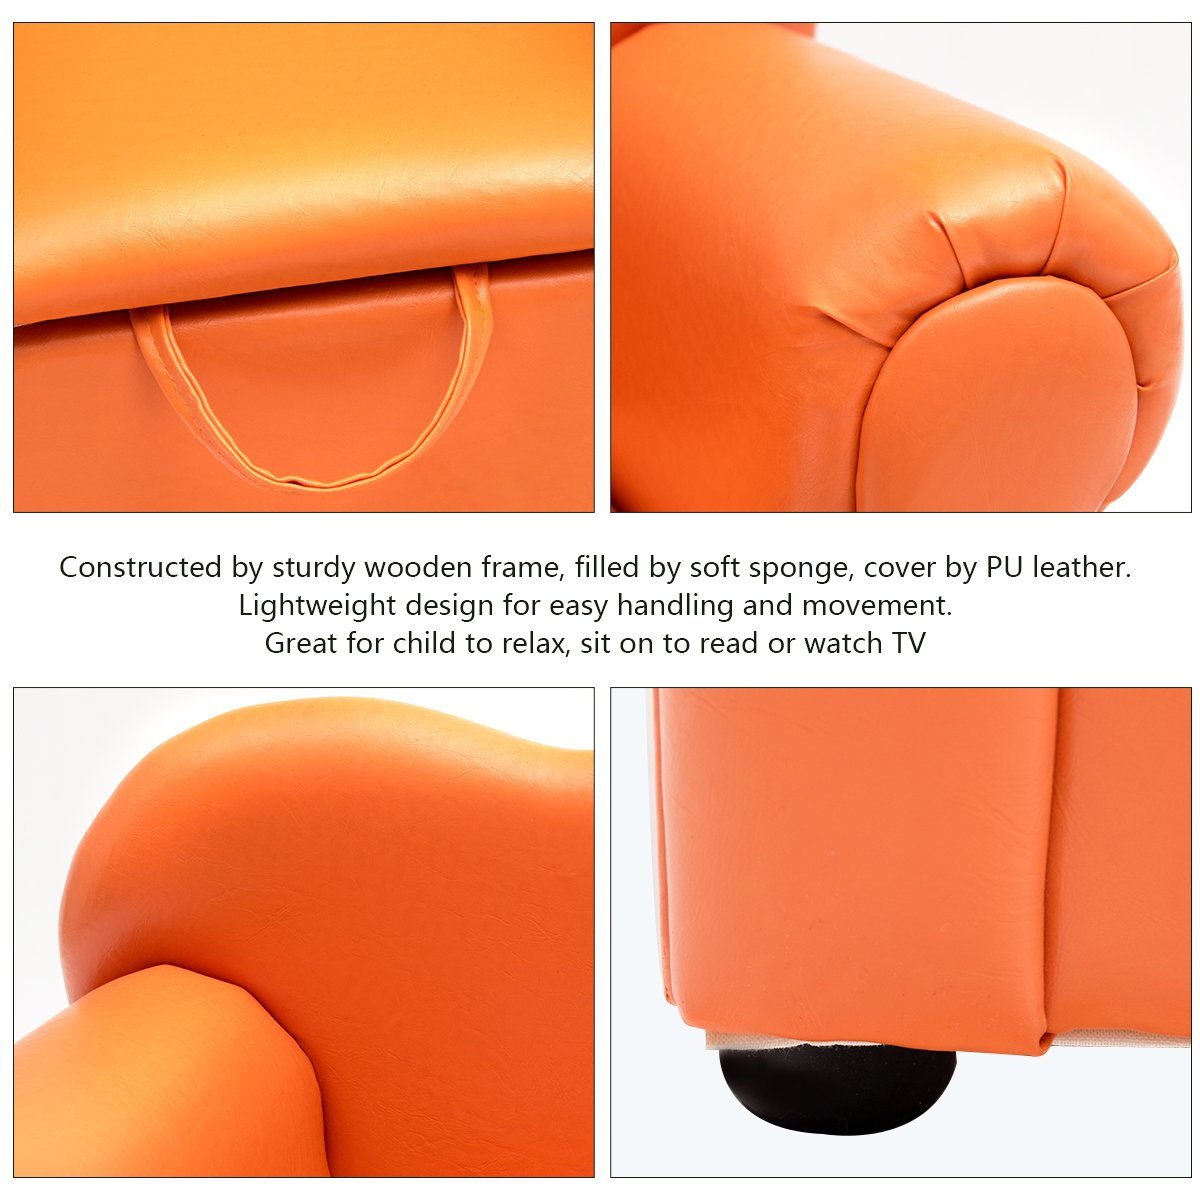 Costzon Kids Sofa, PU Leather Upholstered Armrest, Sturdy Wood Construction, Toddler Chair (Orange Sofa with Storage Box) by Costzon (Image #3)